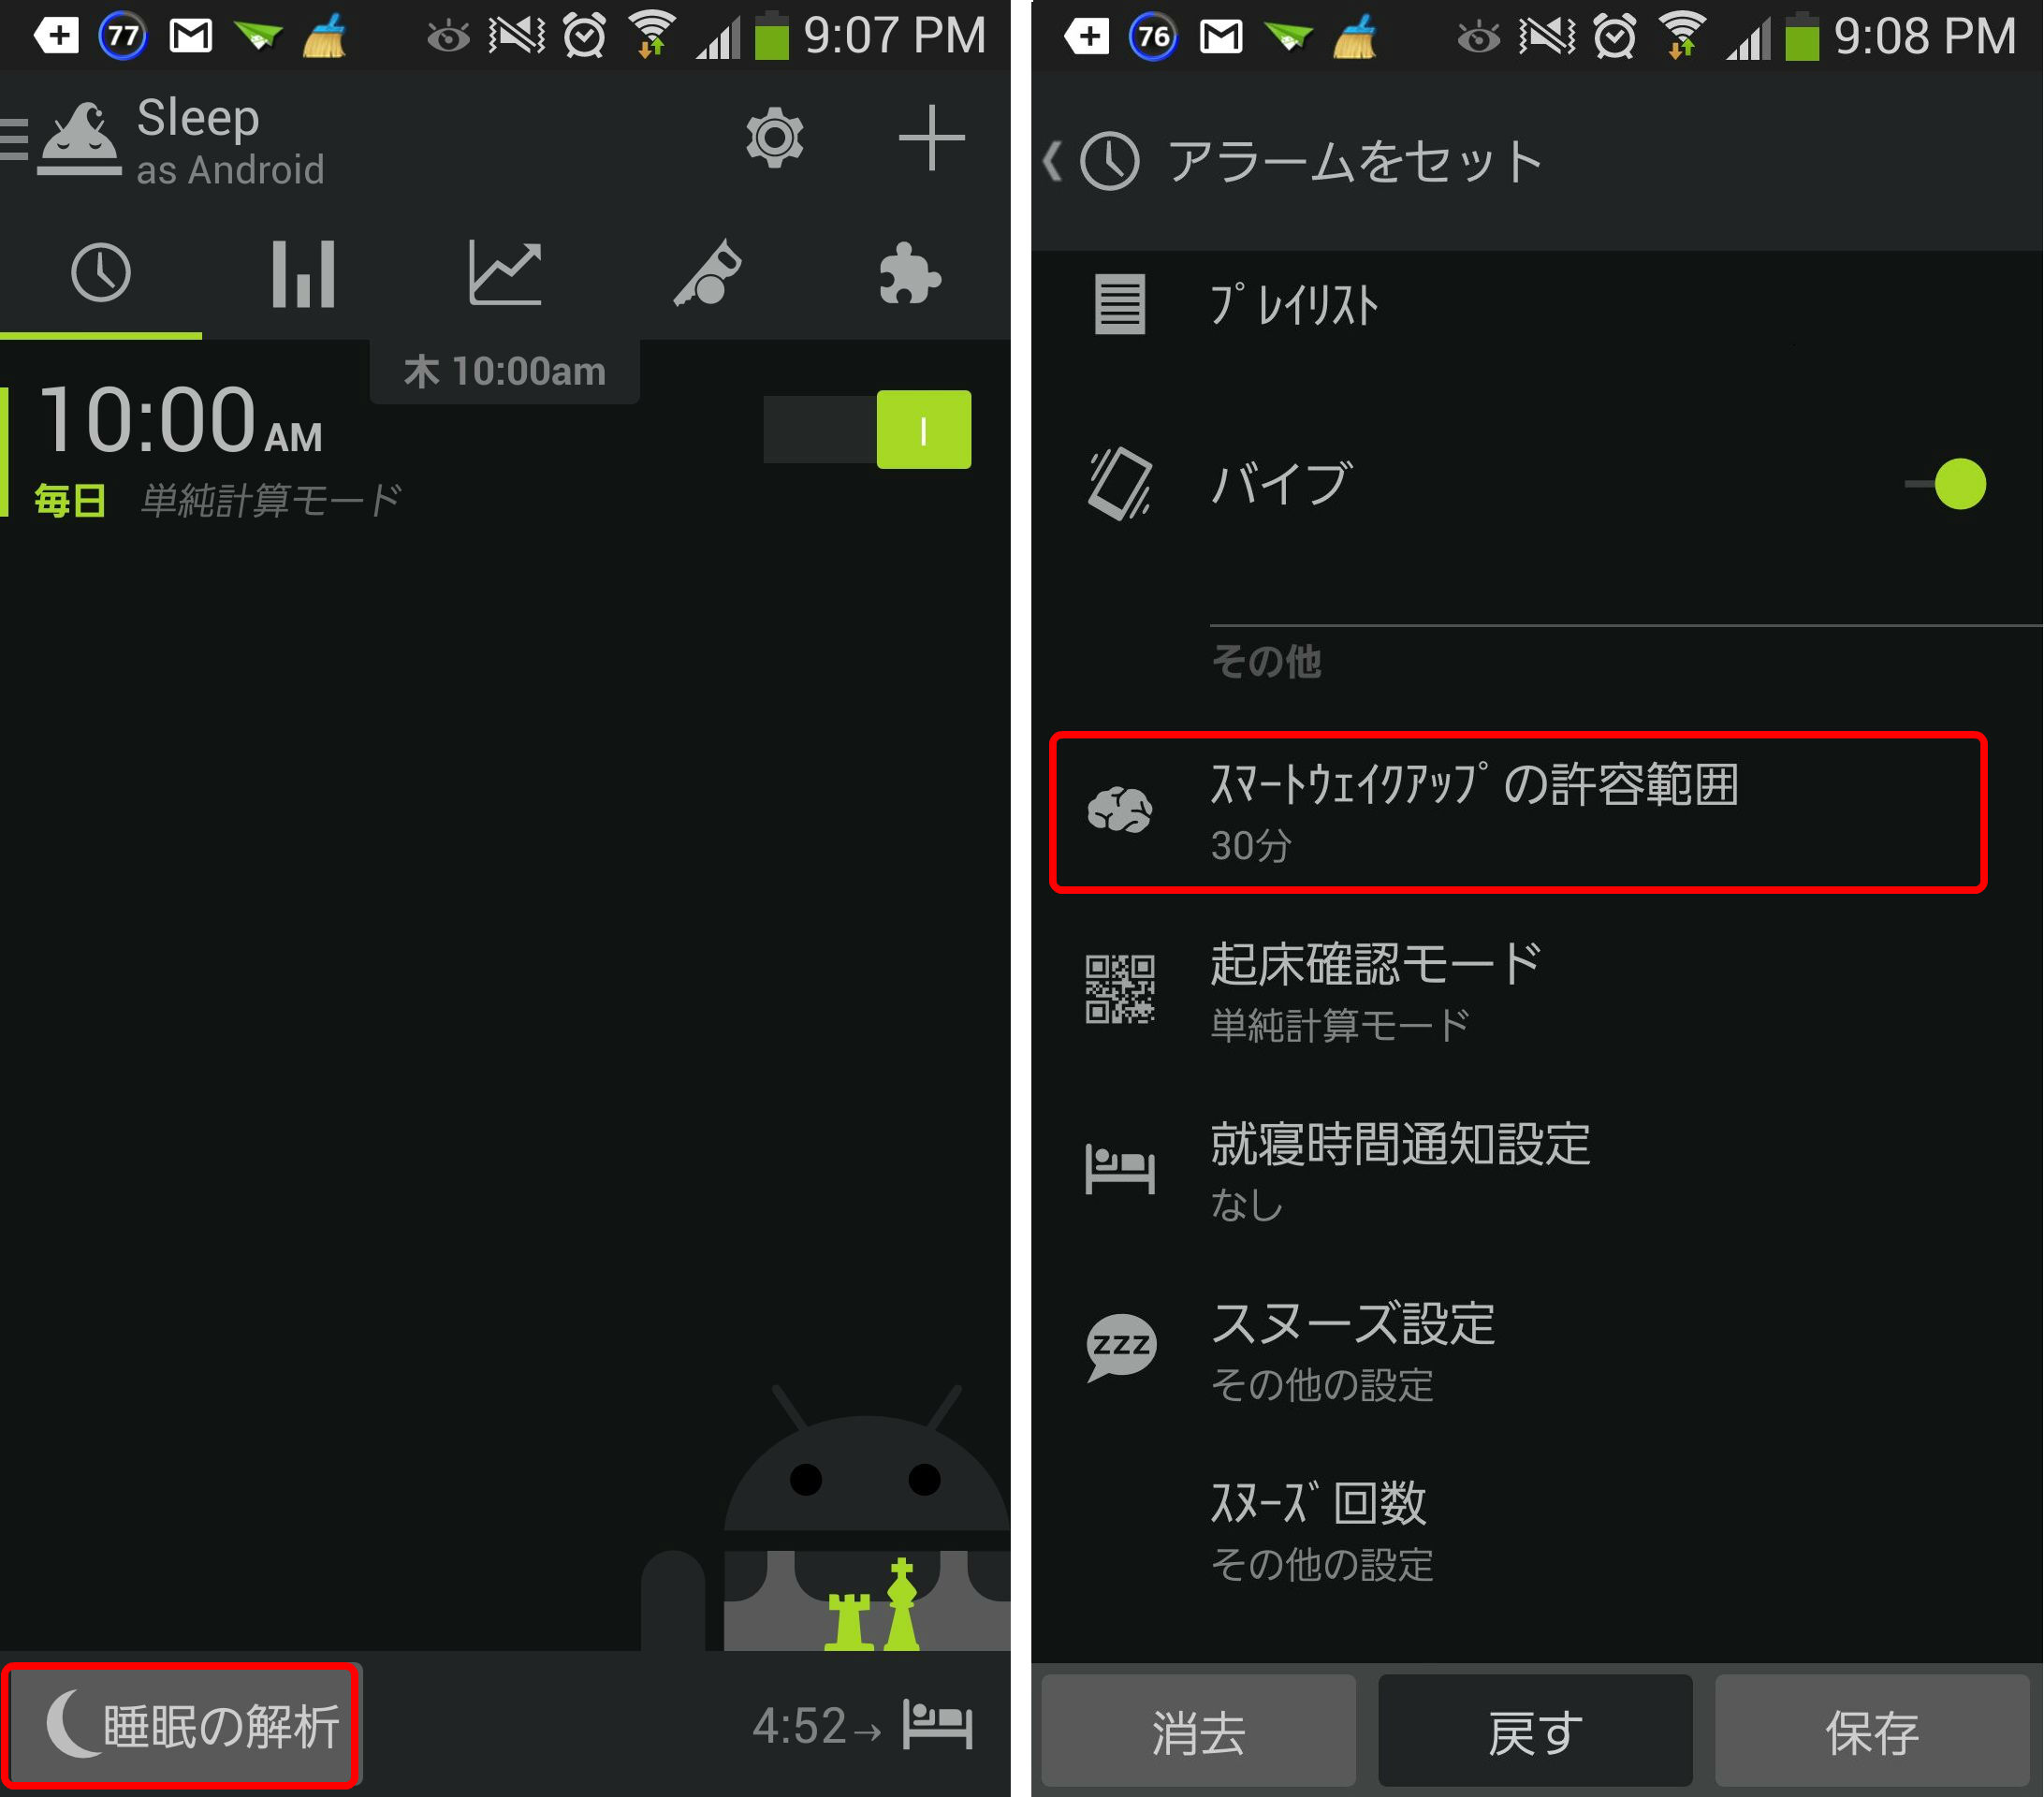 sleep as android3